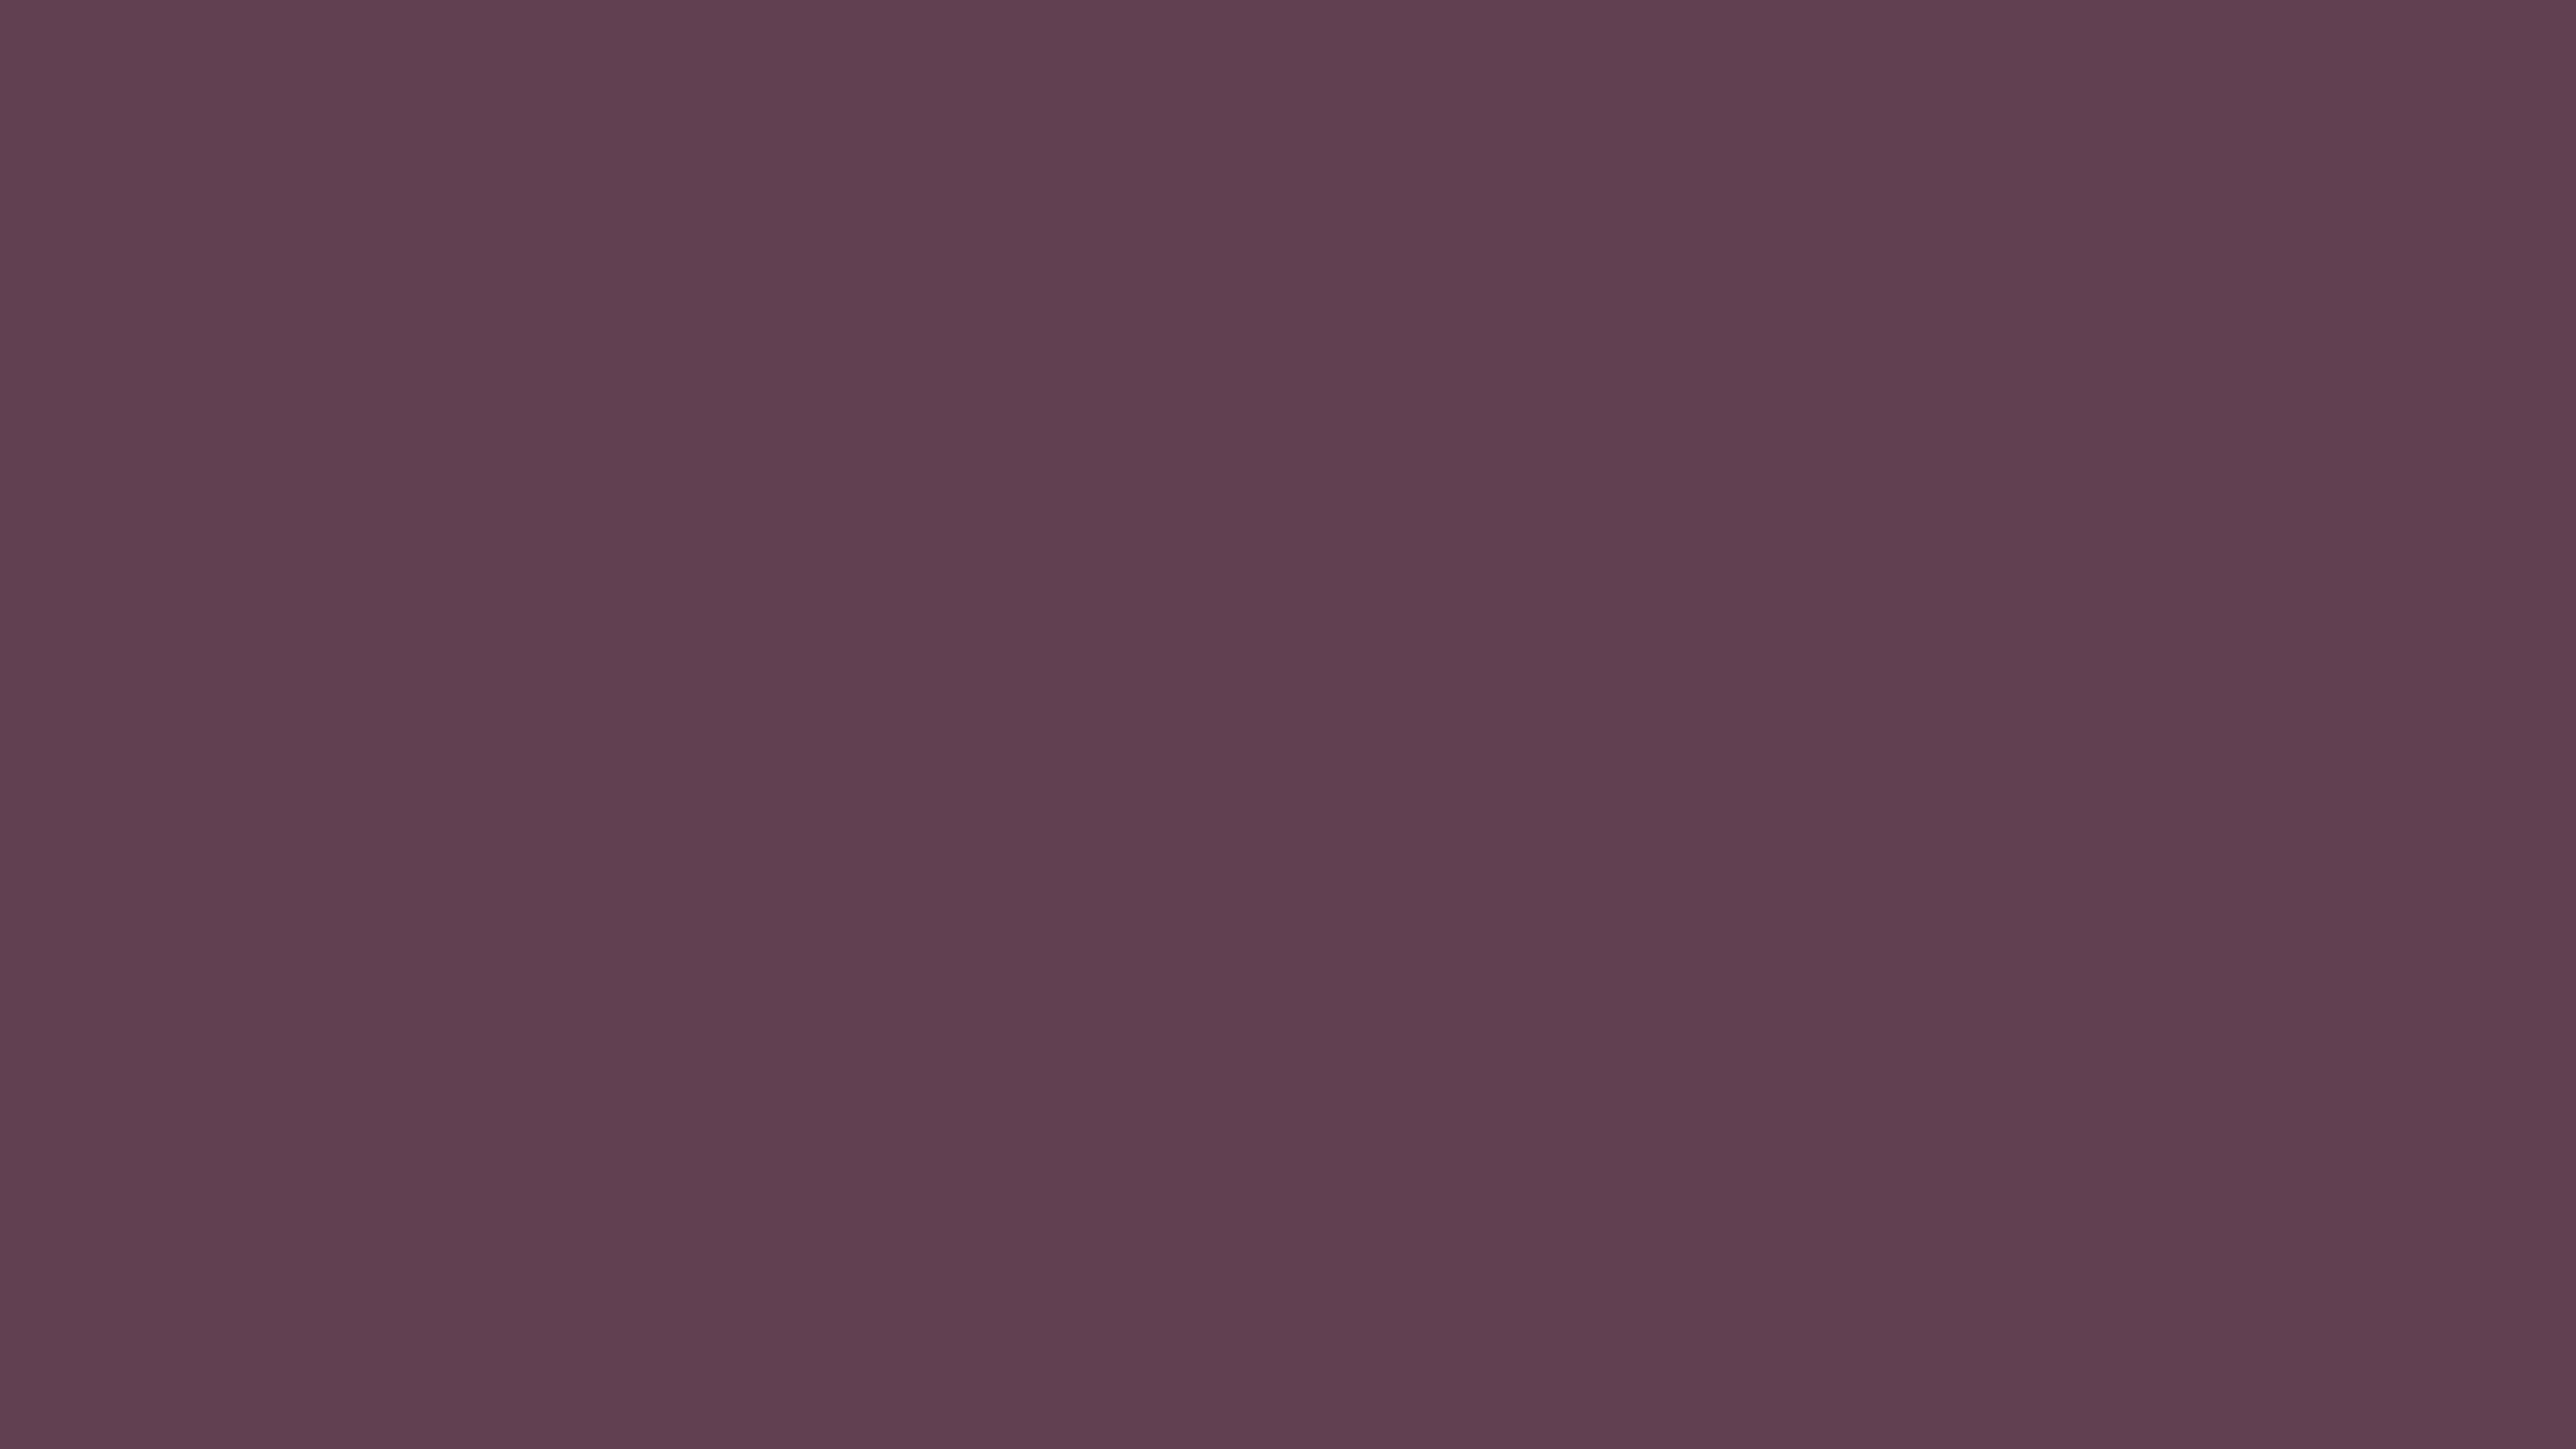 5120x2880 Eggplant Solid Color Background